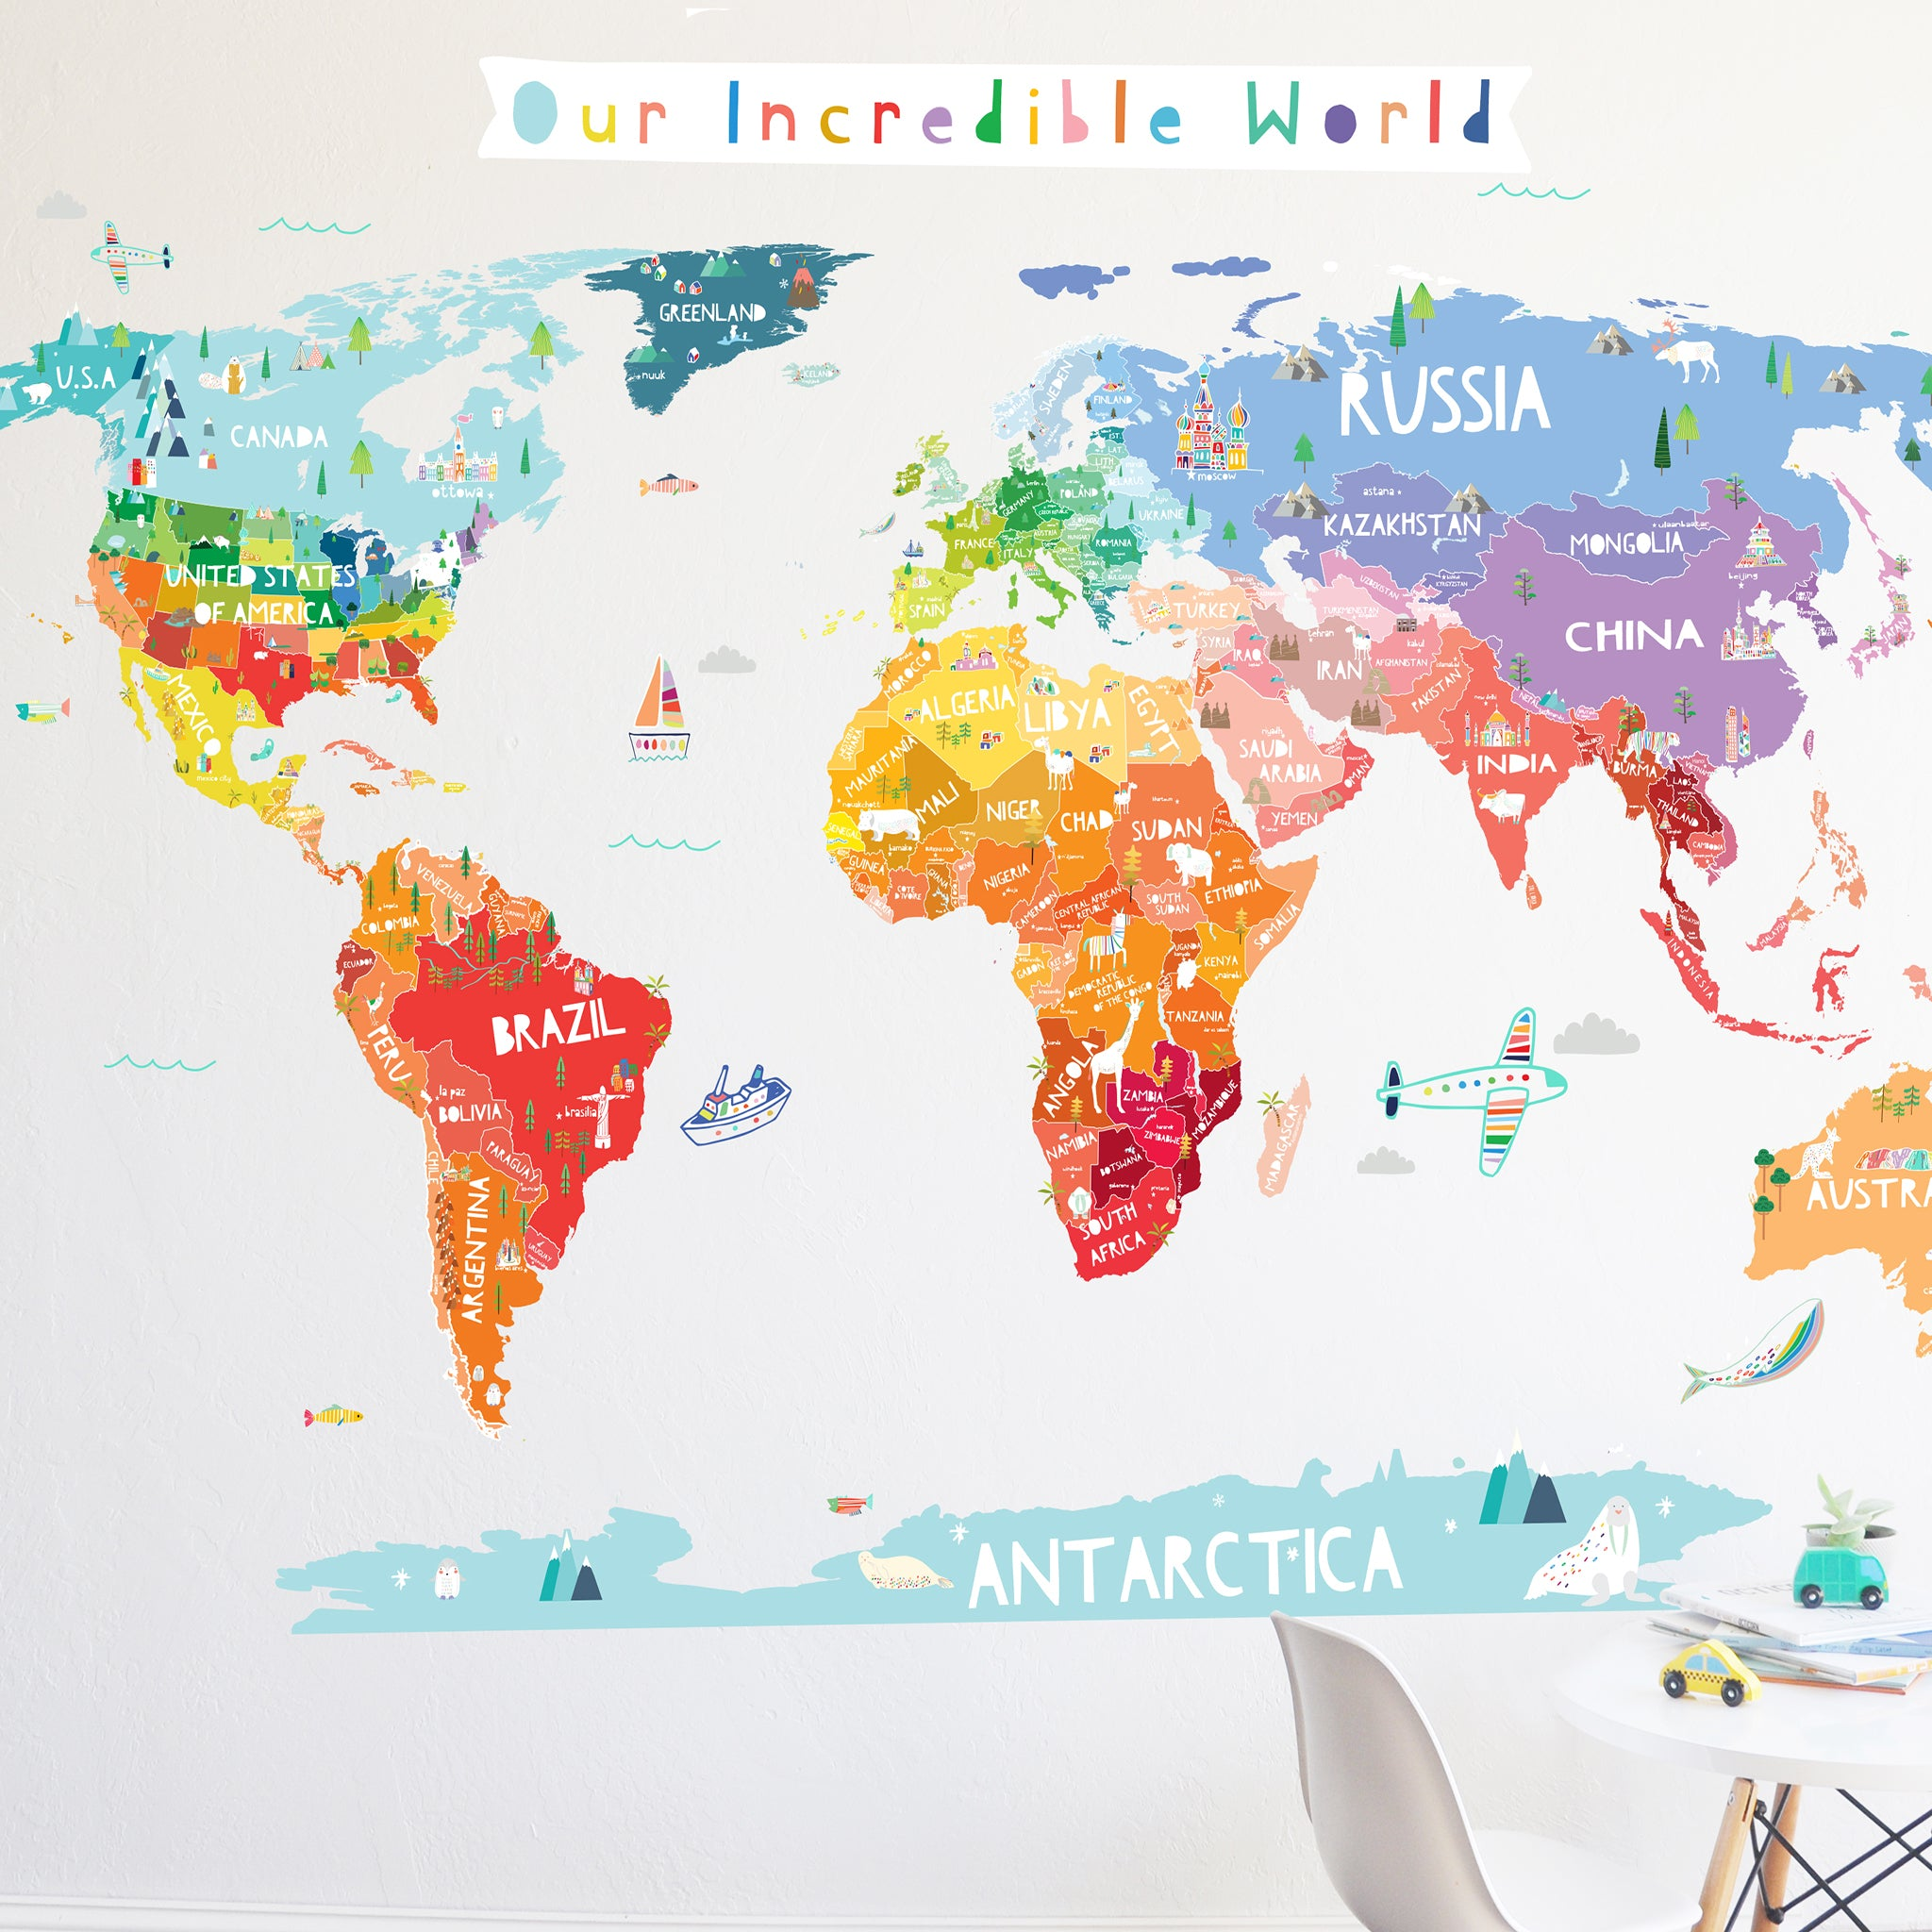 Full Wall World Map.Our Incredible World Die Cut World Map Wall Decal With